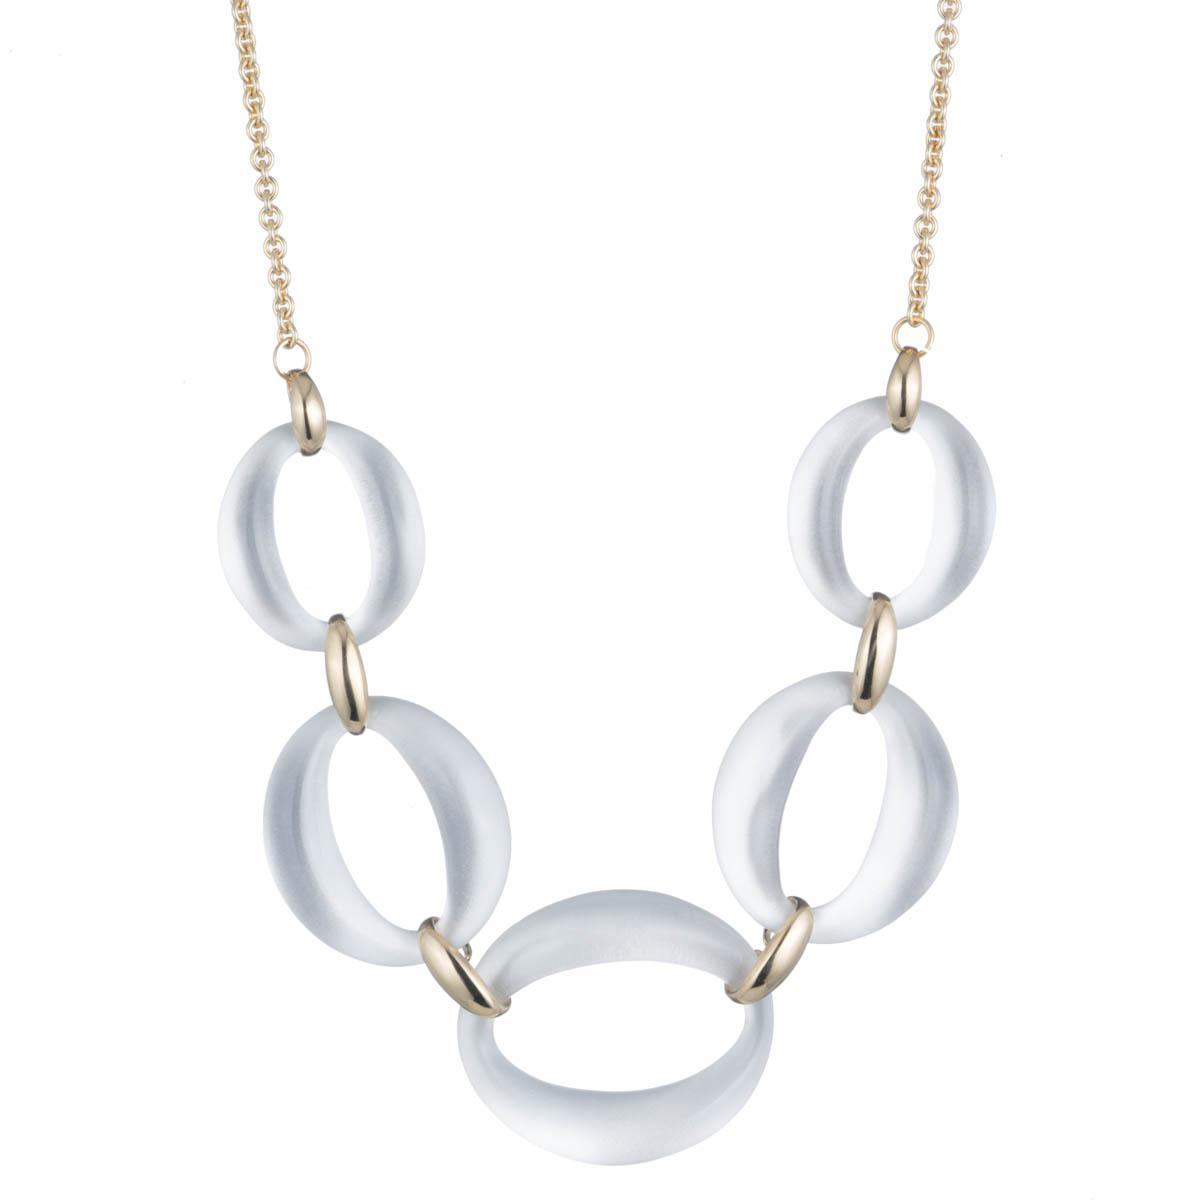 Alexis Bittar Large Lucite Link Necklace, 16